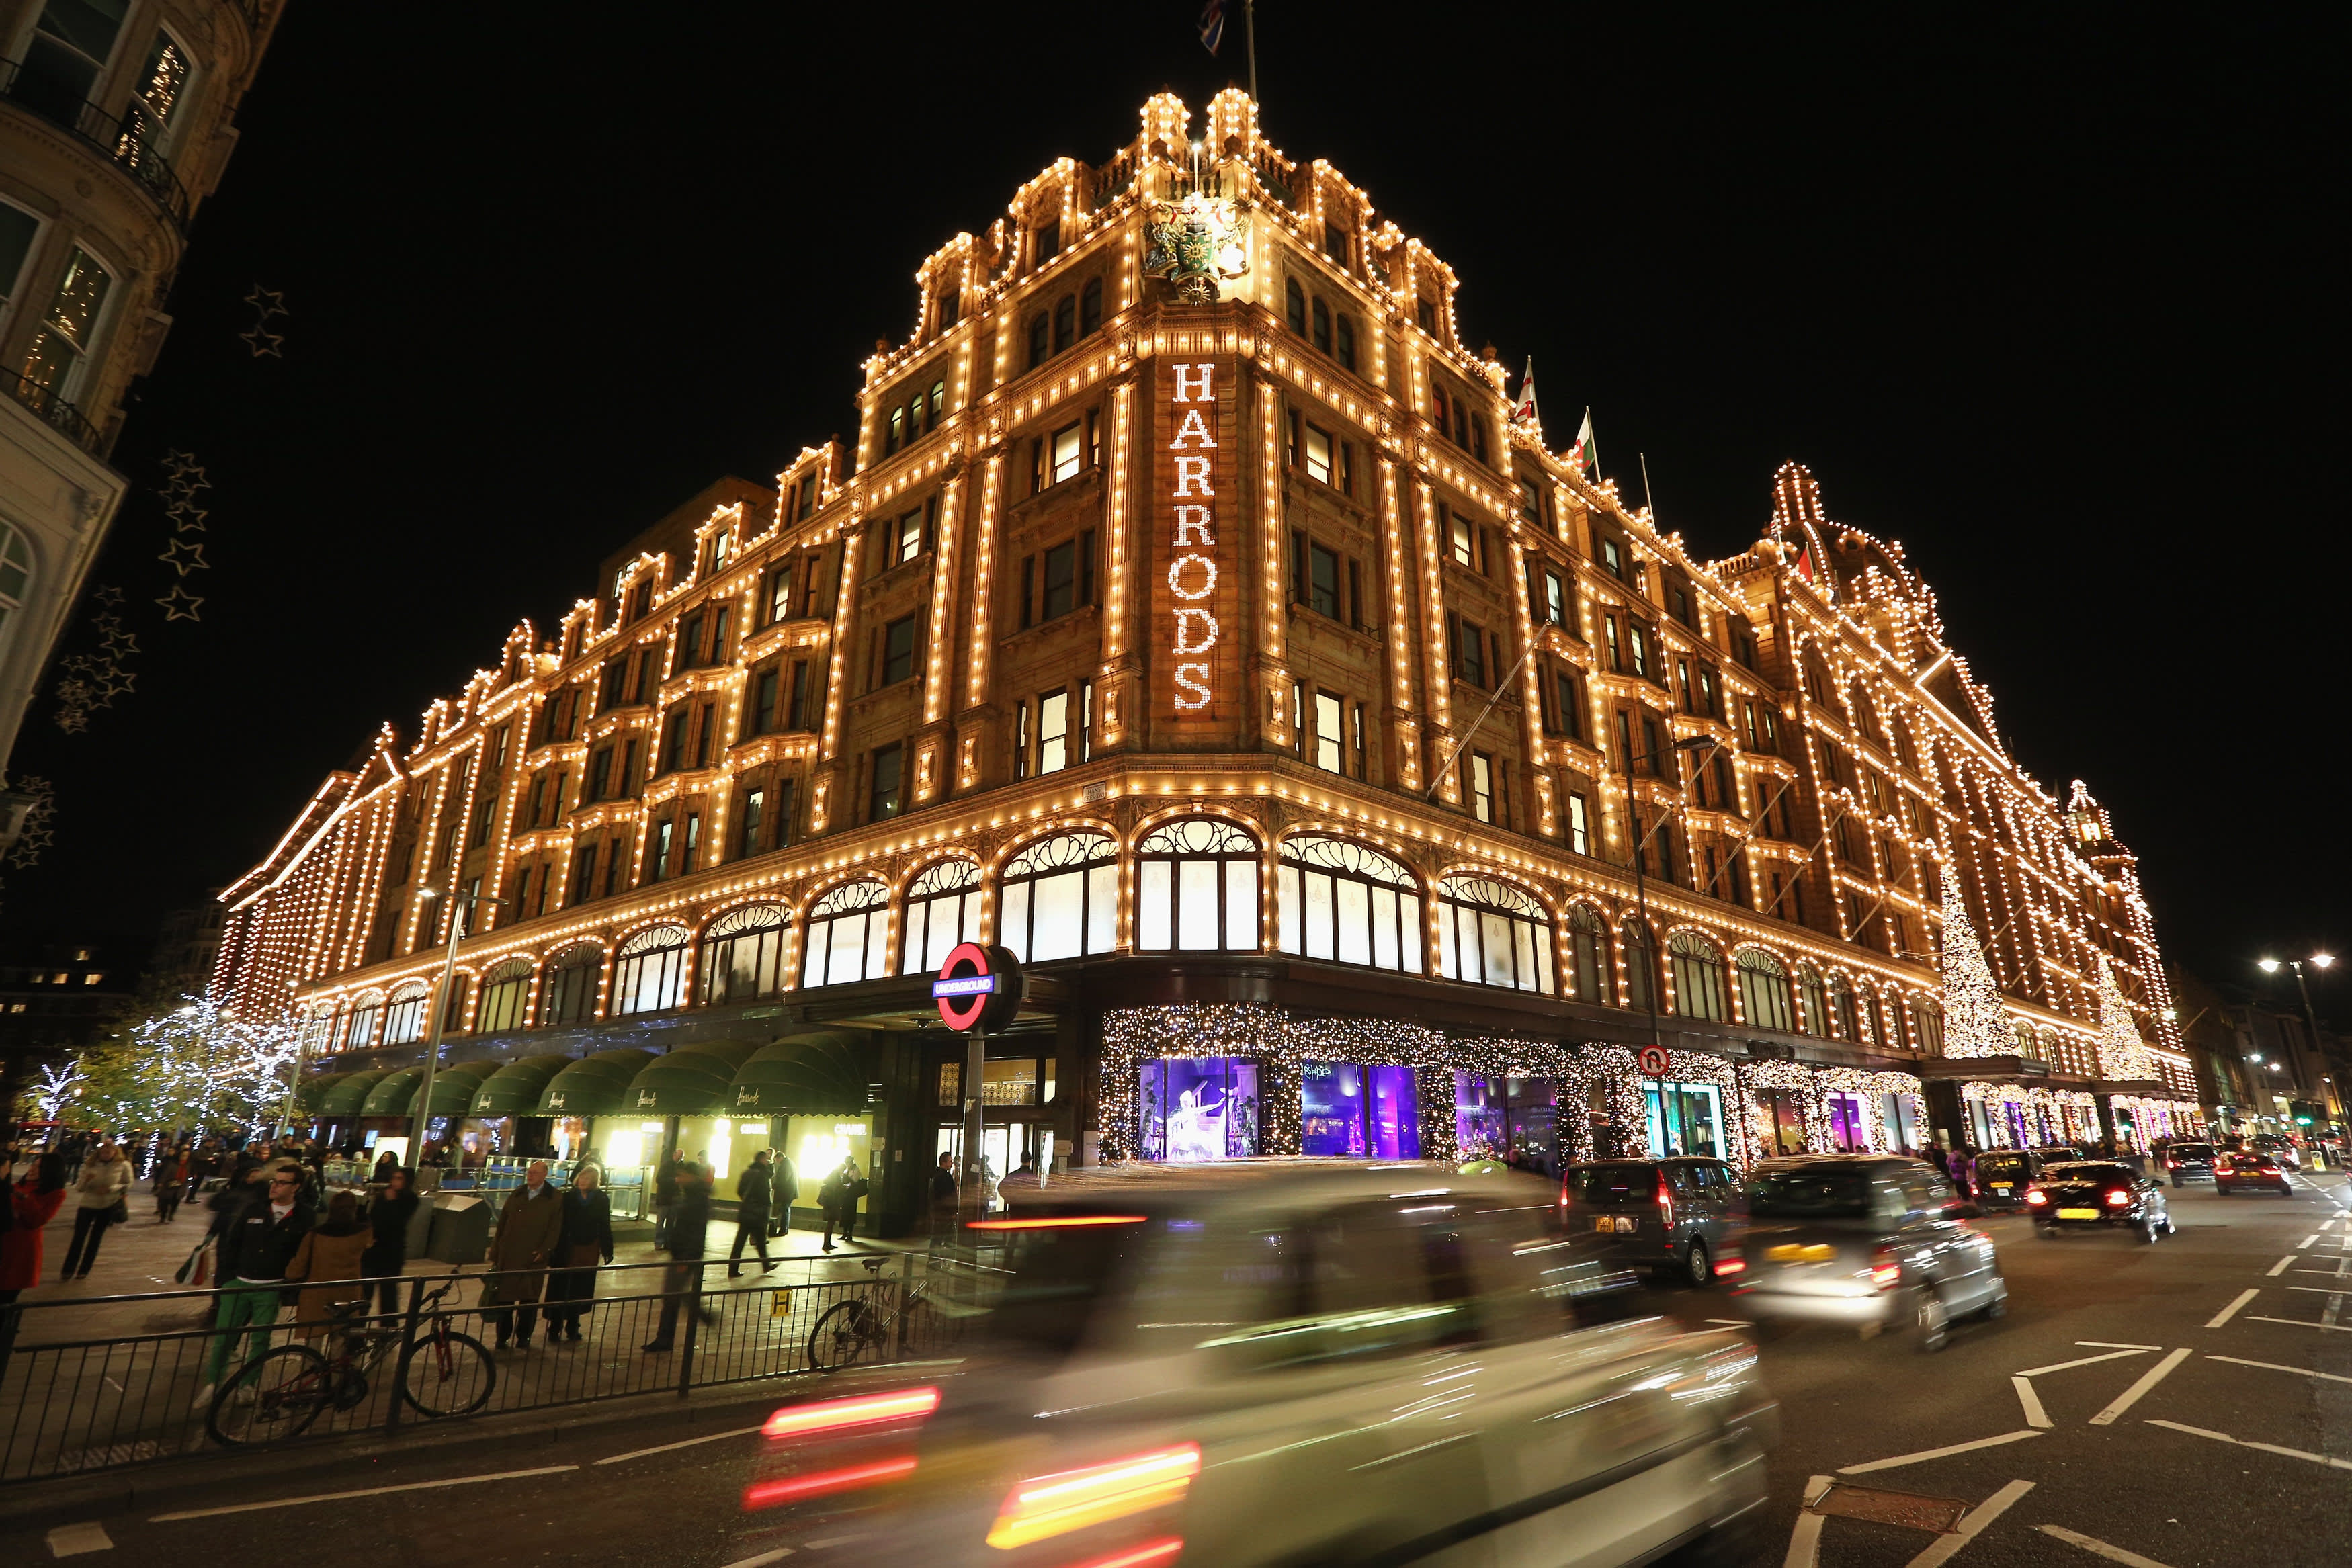 Santa visits reserved for shoppers who spend over $2,500 at London's famous Harrods store